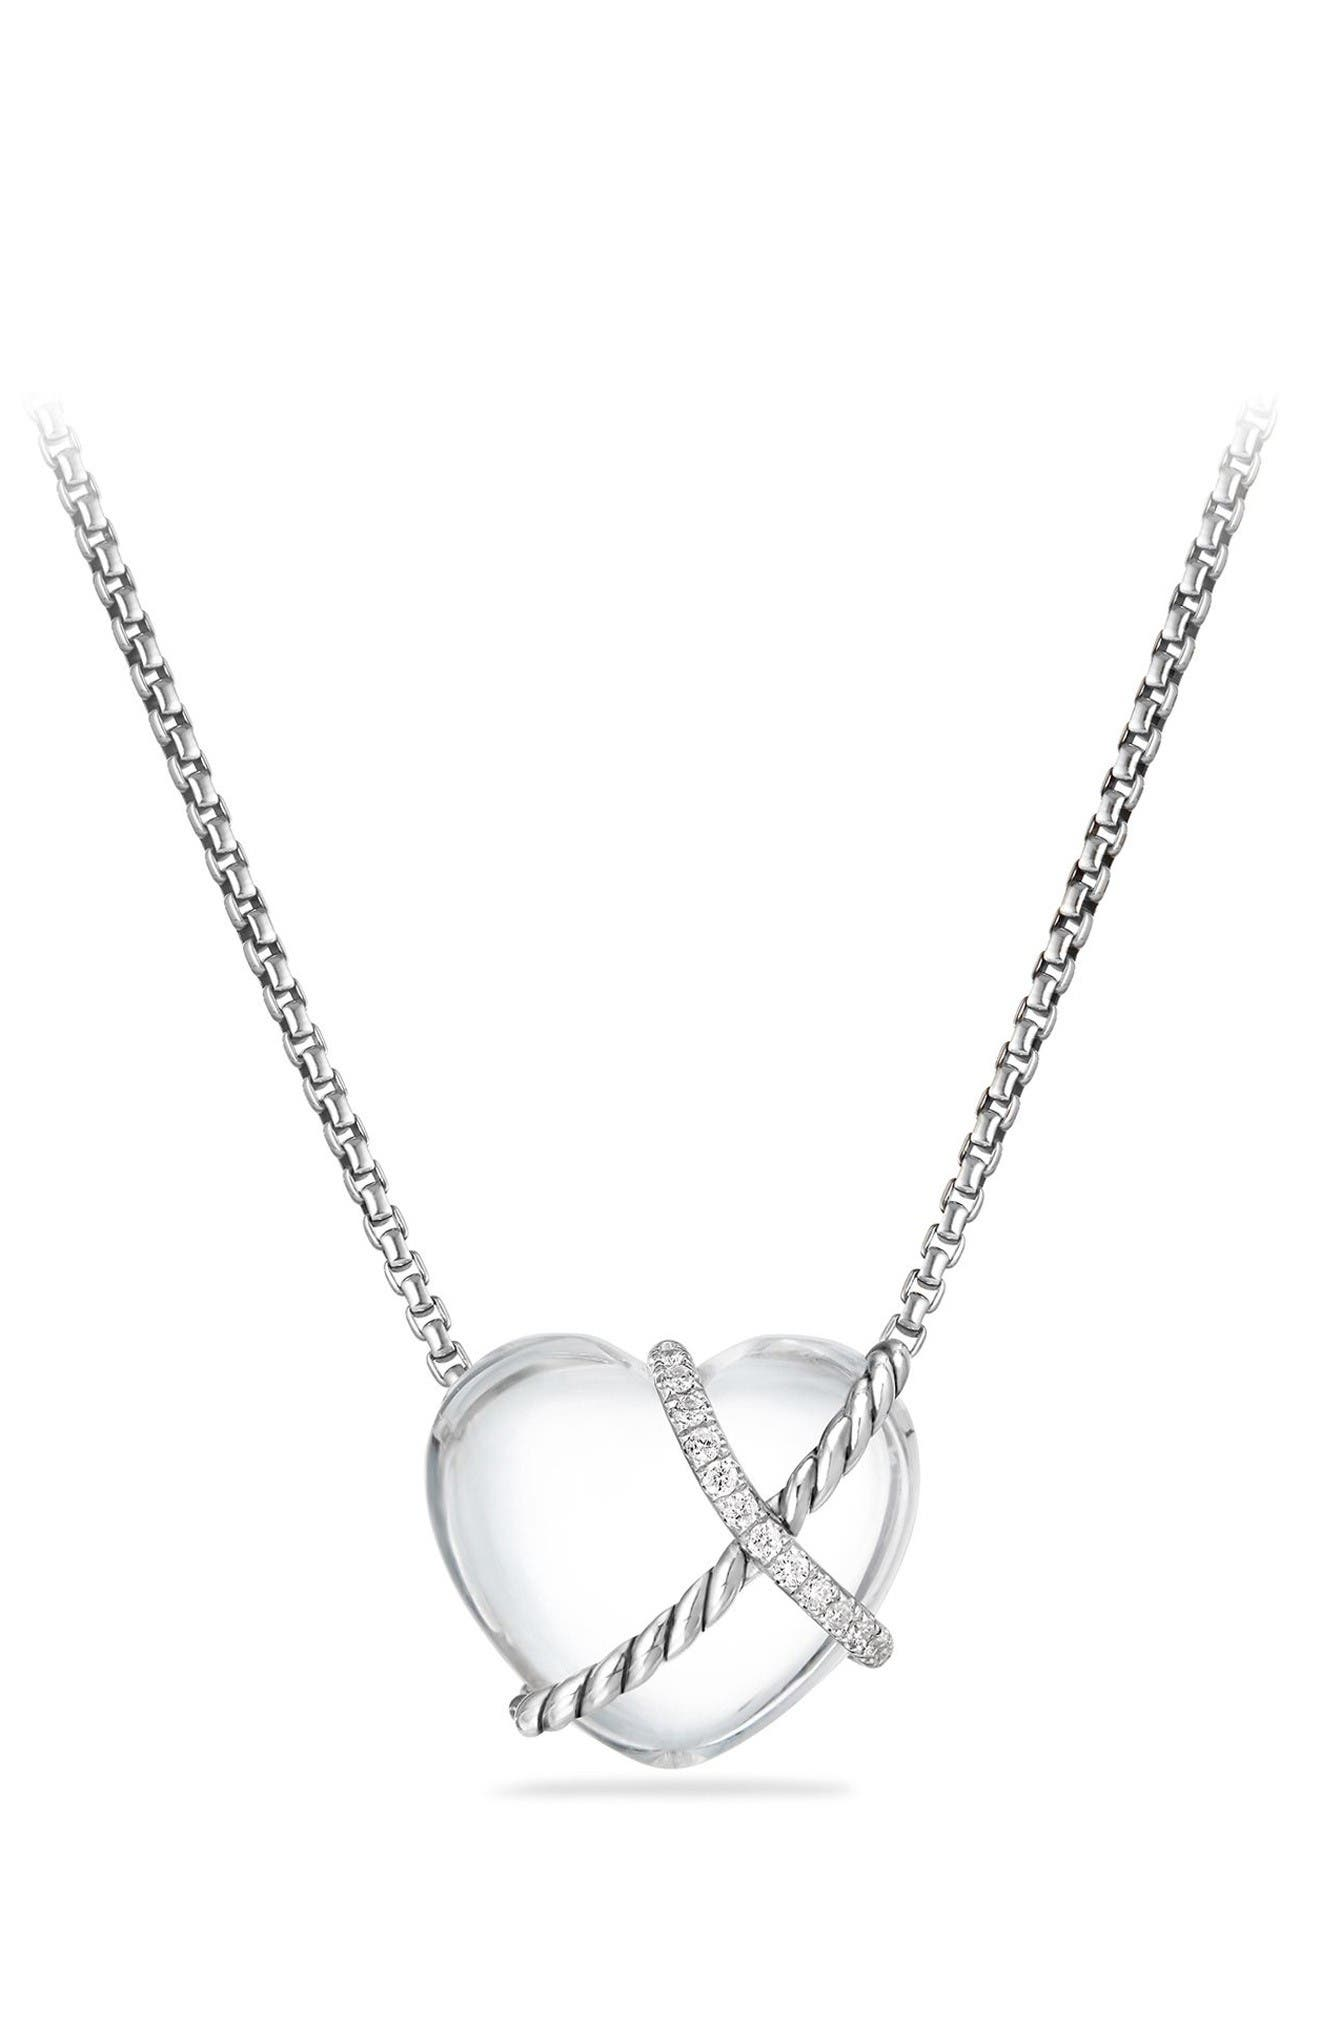 Main Image - David Yurman Le Petite Coeur Sculpted Heart Chain Necklace with Diamonds